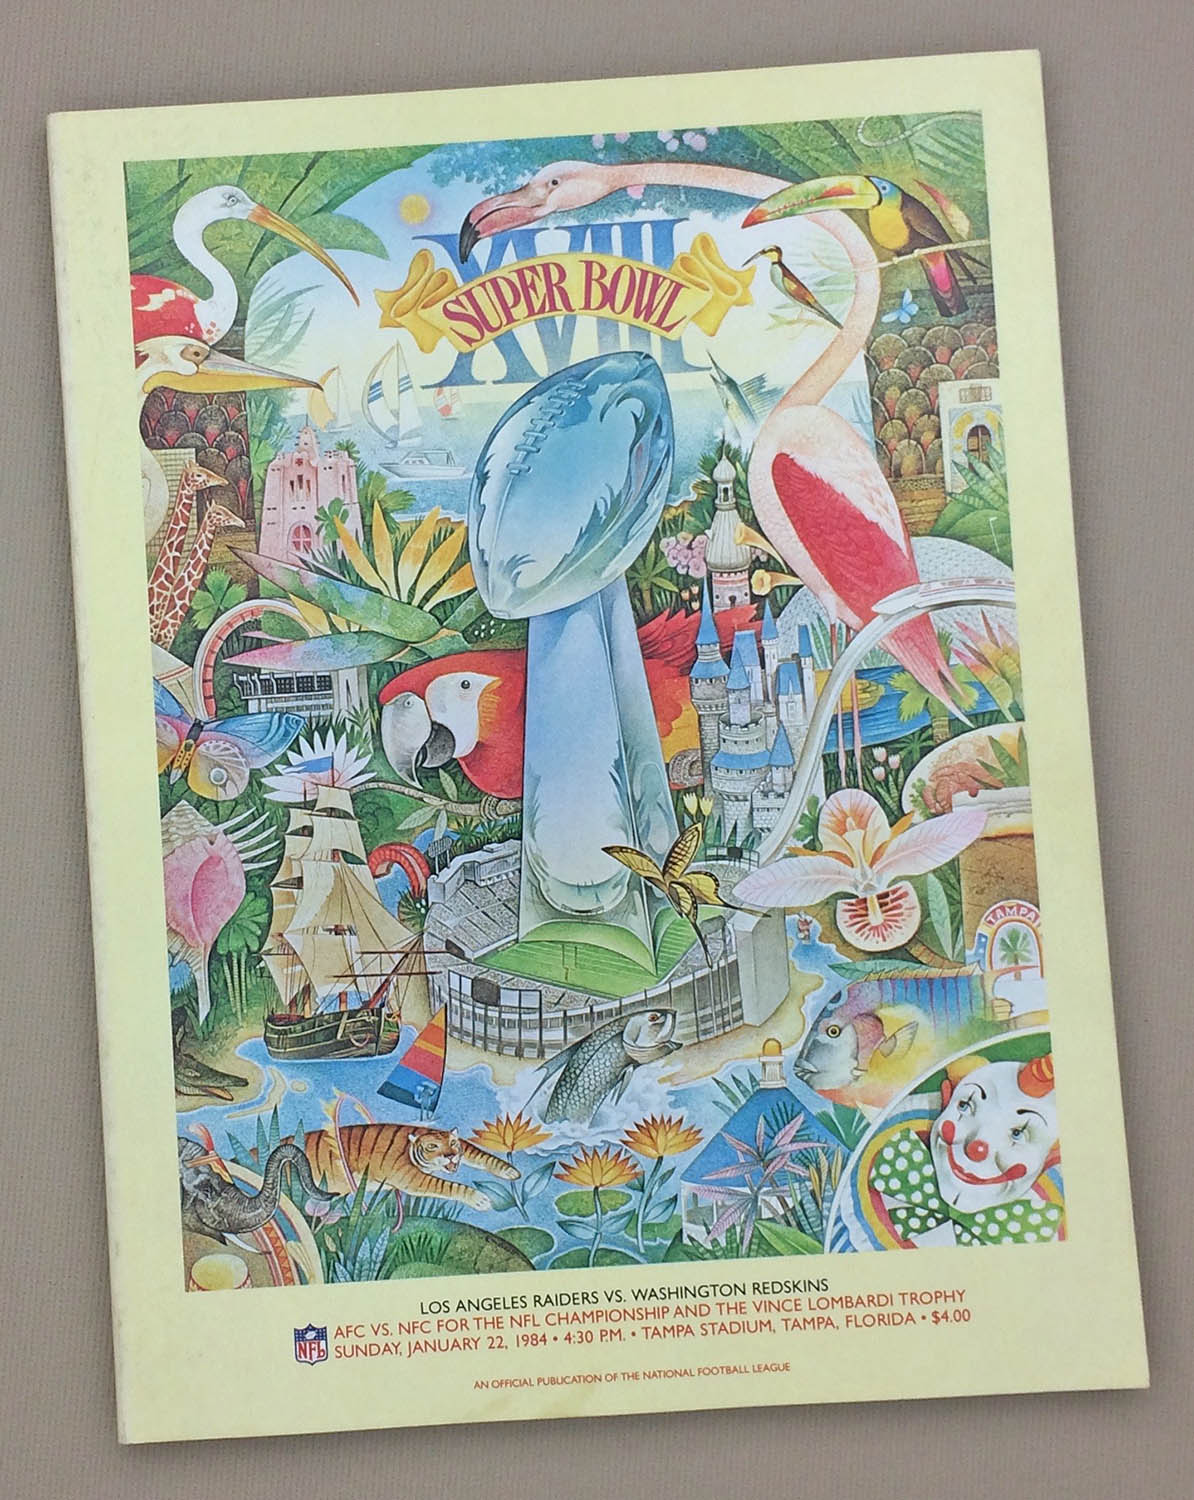 Super Bowl XVIII 1984 Program